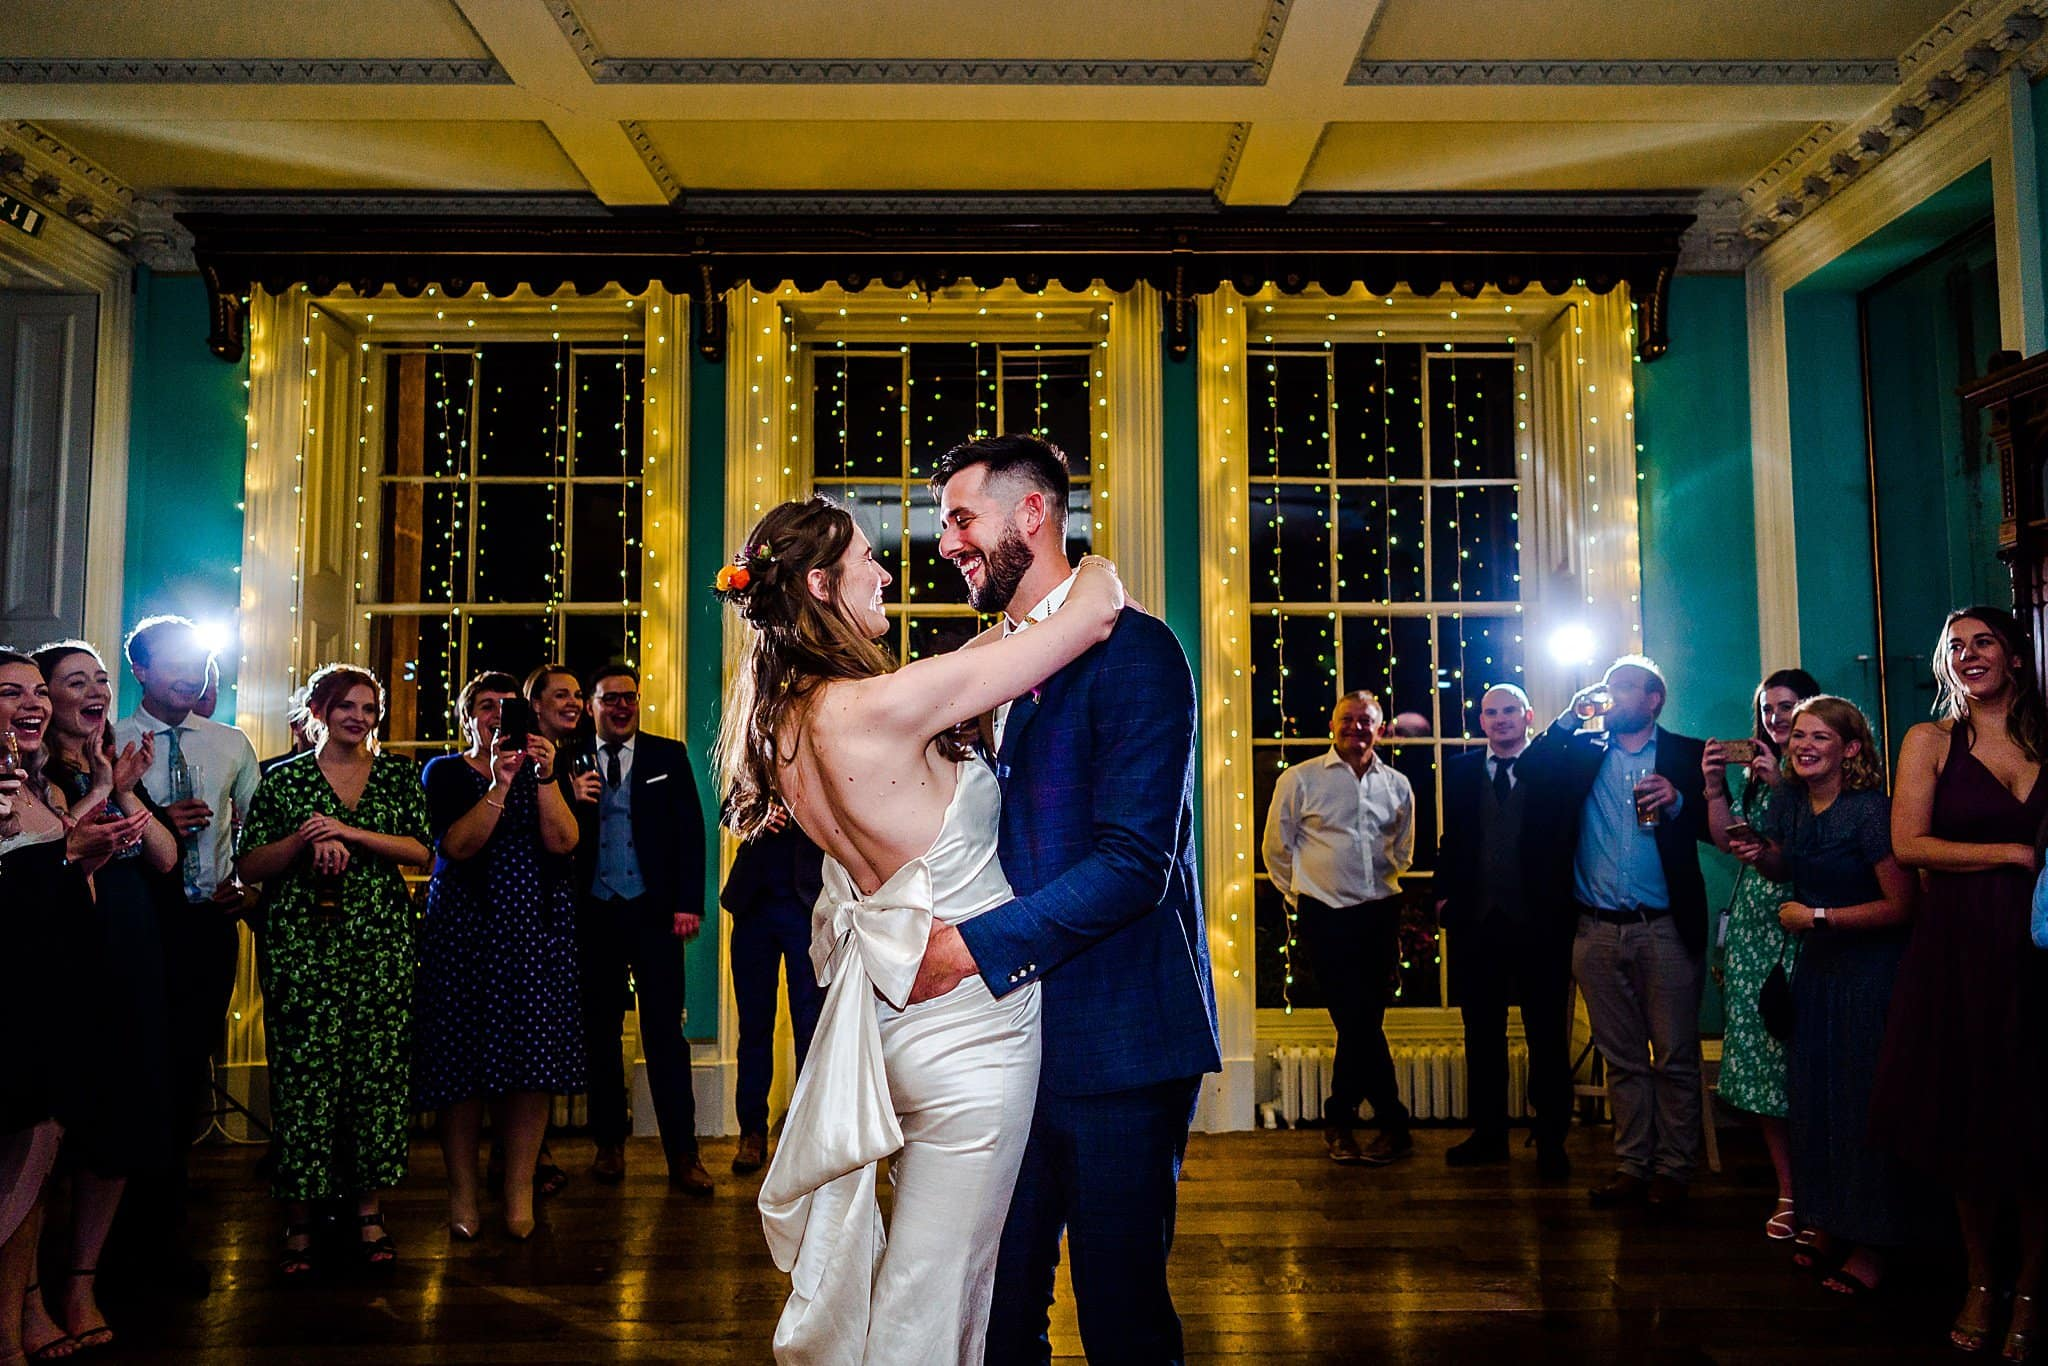 Bride and groom perform their first dance together at Prestwold Hall